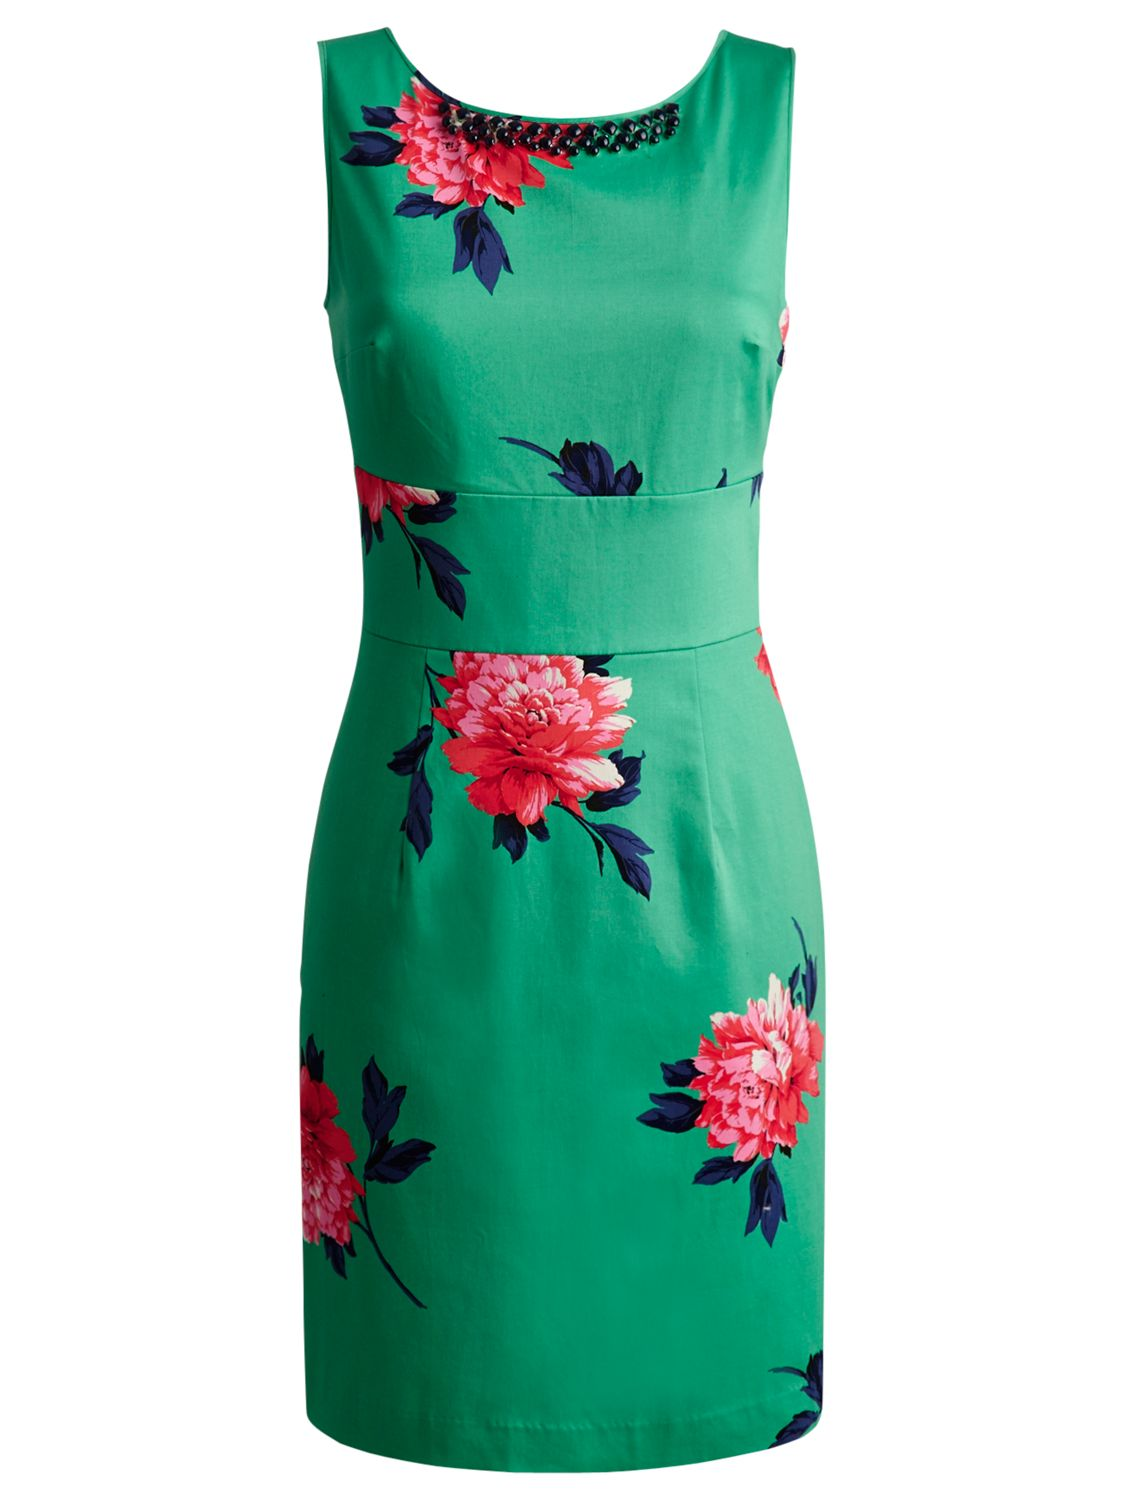 joules natasha dress spring green peony, joules, natasha, dress, spring, green, peony, 14 12 10 18 8 16, women, womens dresses, brands a-k, 1813270